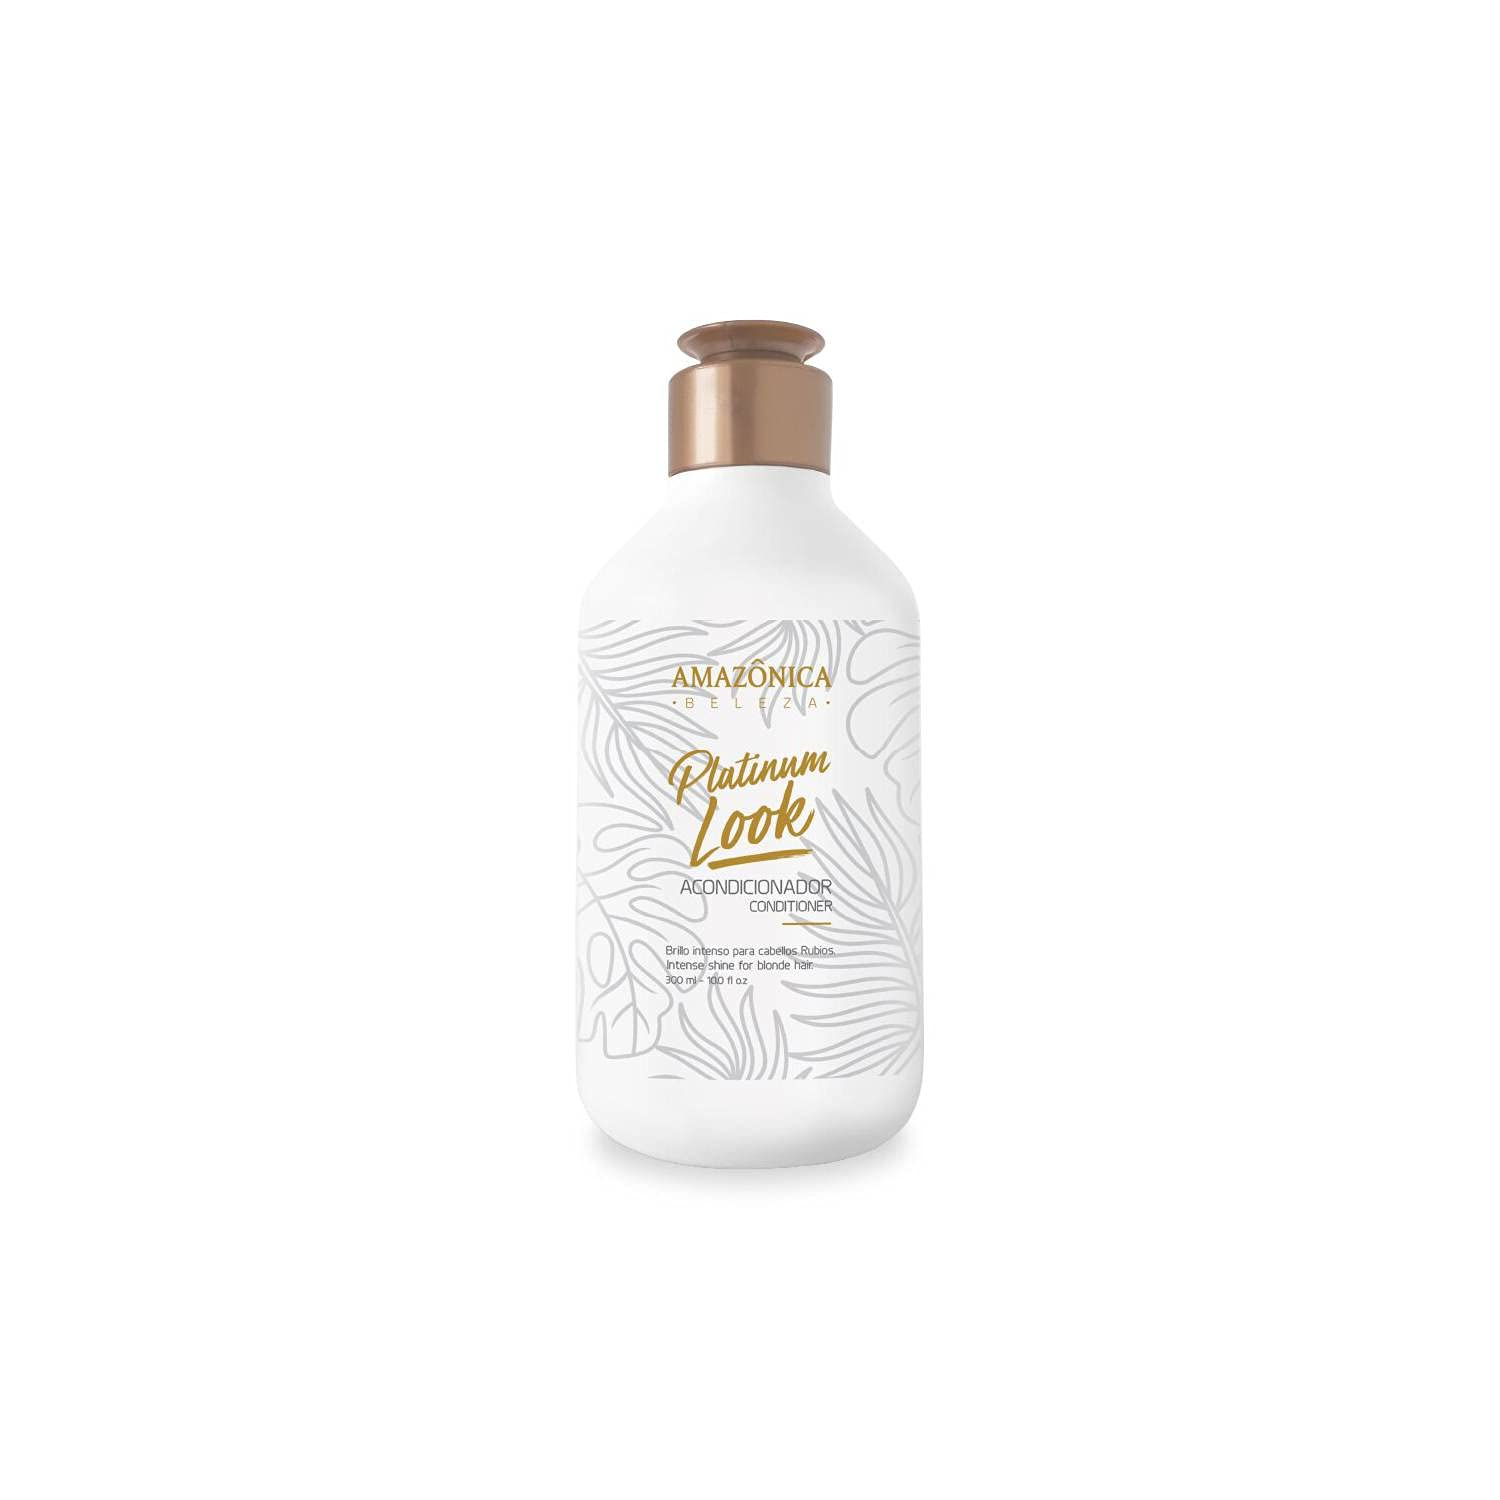 AMAZONICA BELEZA Platinum specialty shop Look Conditioner Blonder for Outlet ☆ Free Shipping 300 Hair